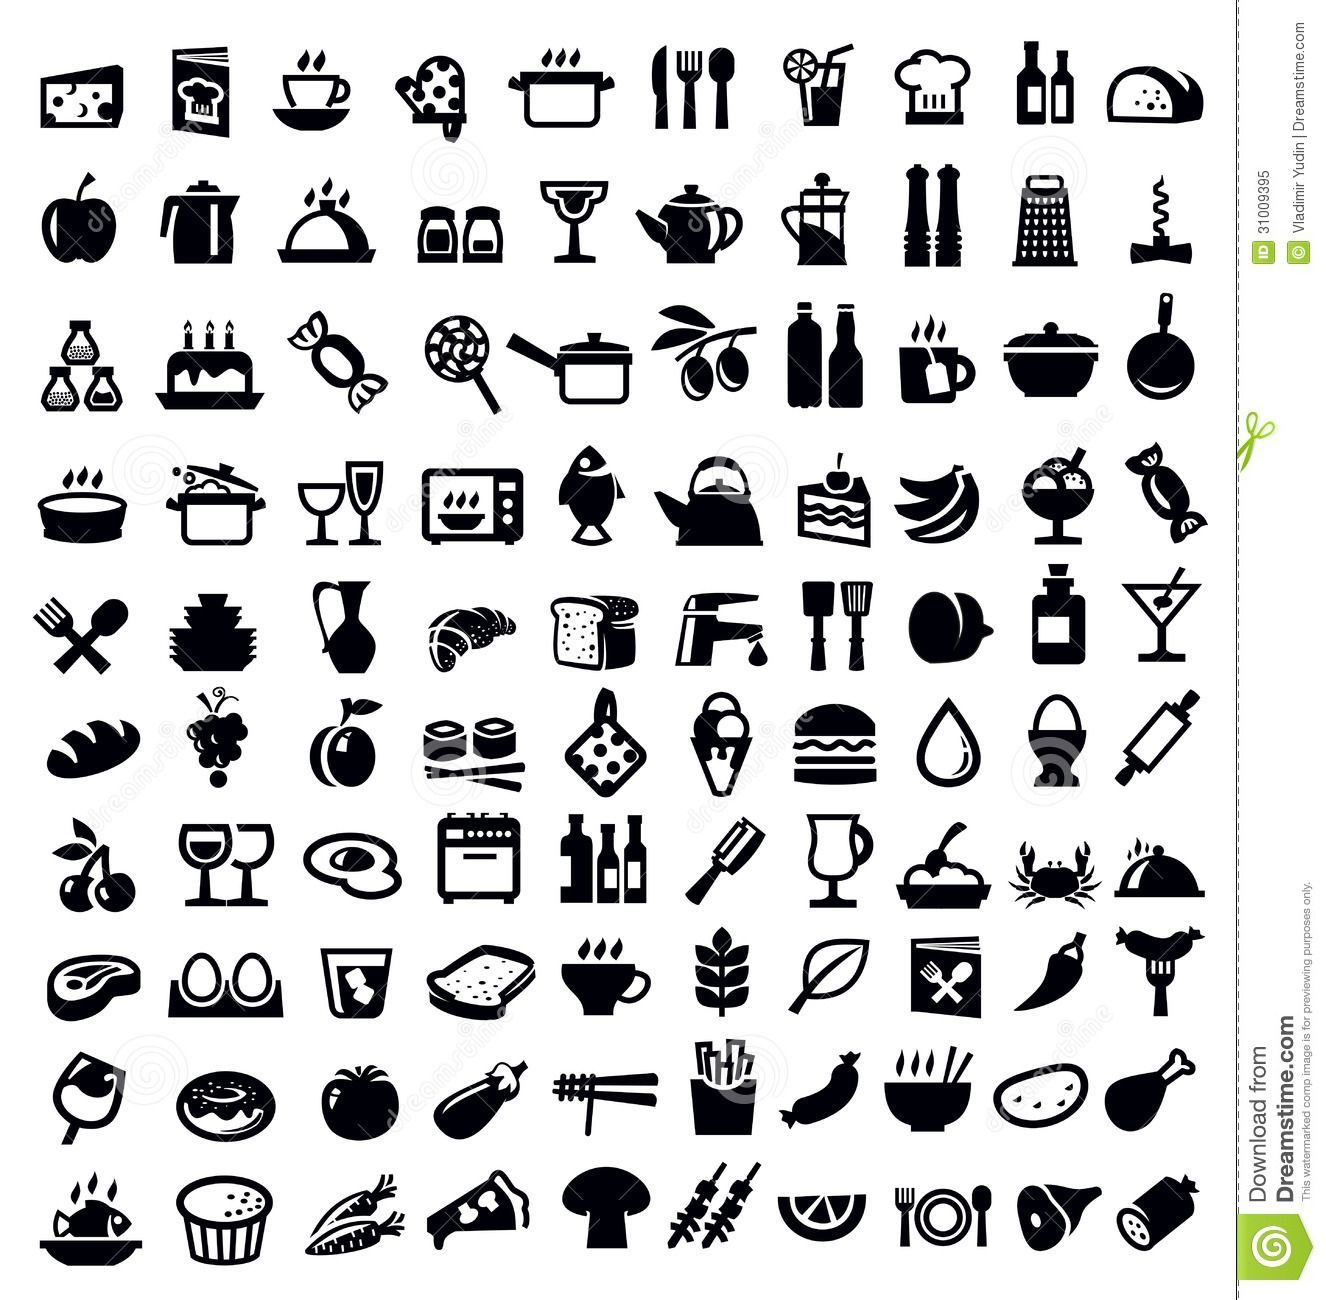 free food icons Google Search in 2020 Food icons